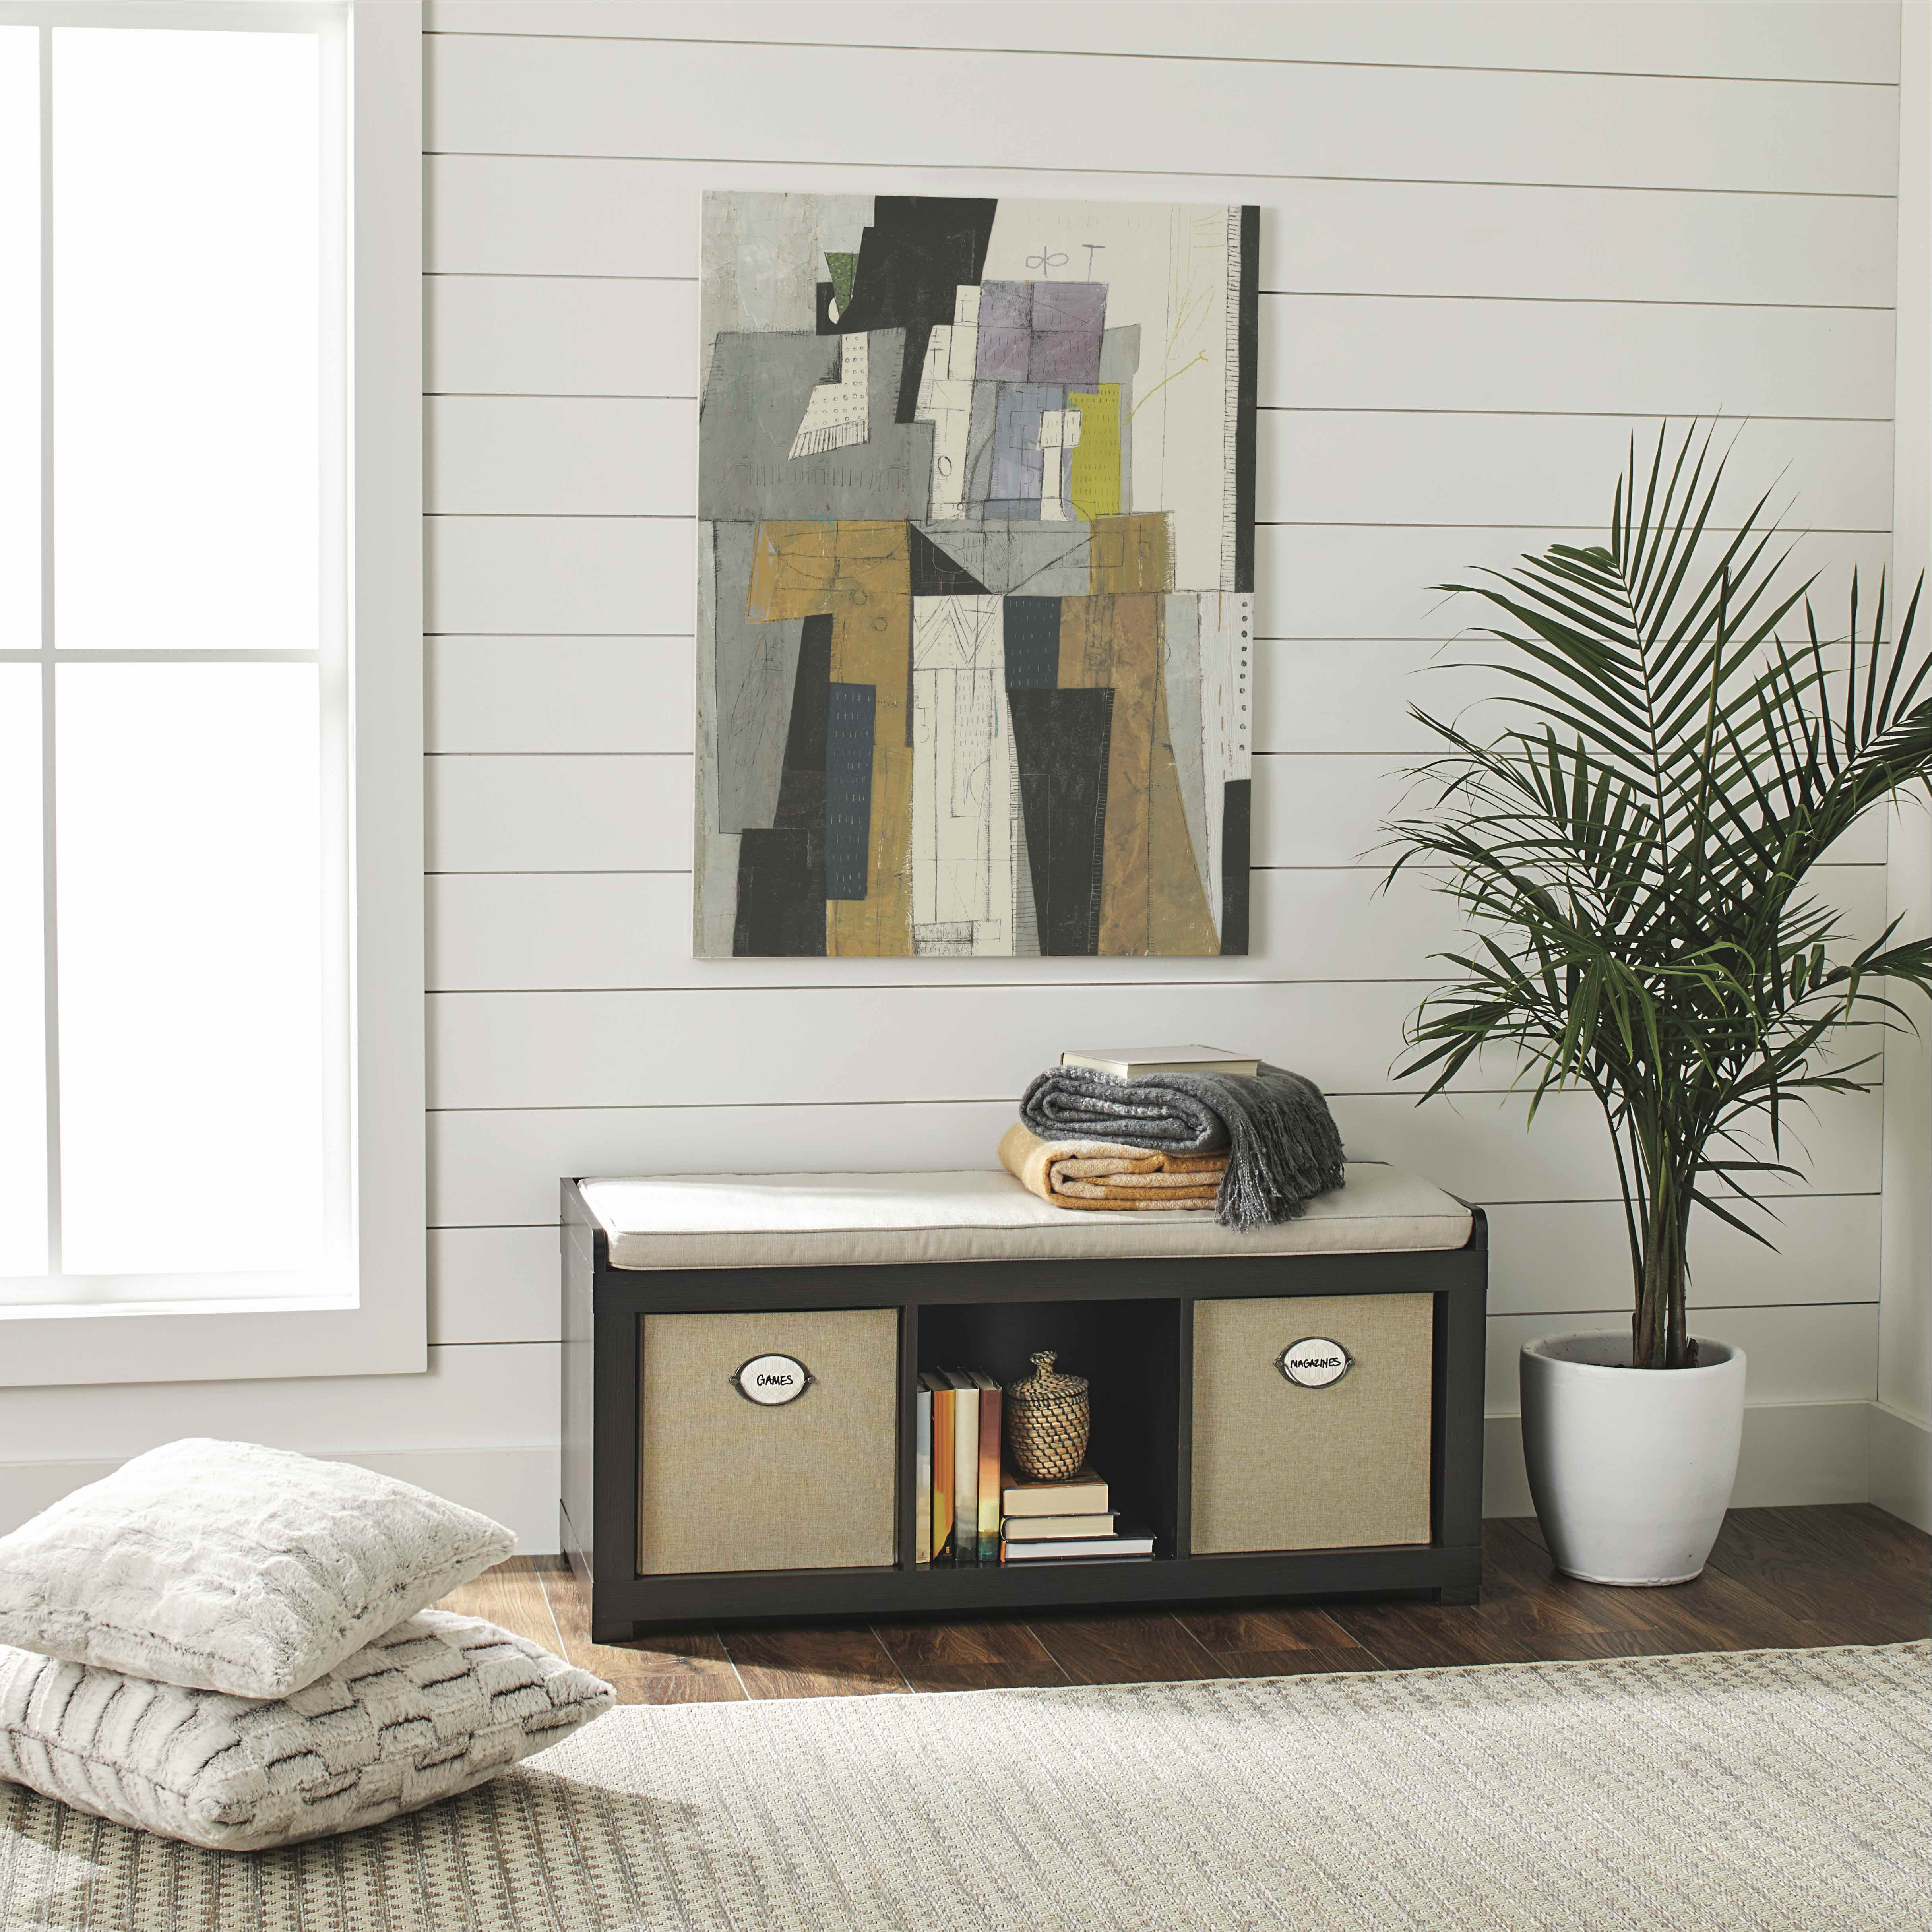 Better Homes and Gardens 3-Cube Organizer Bench